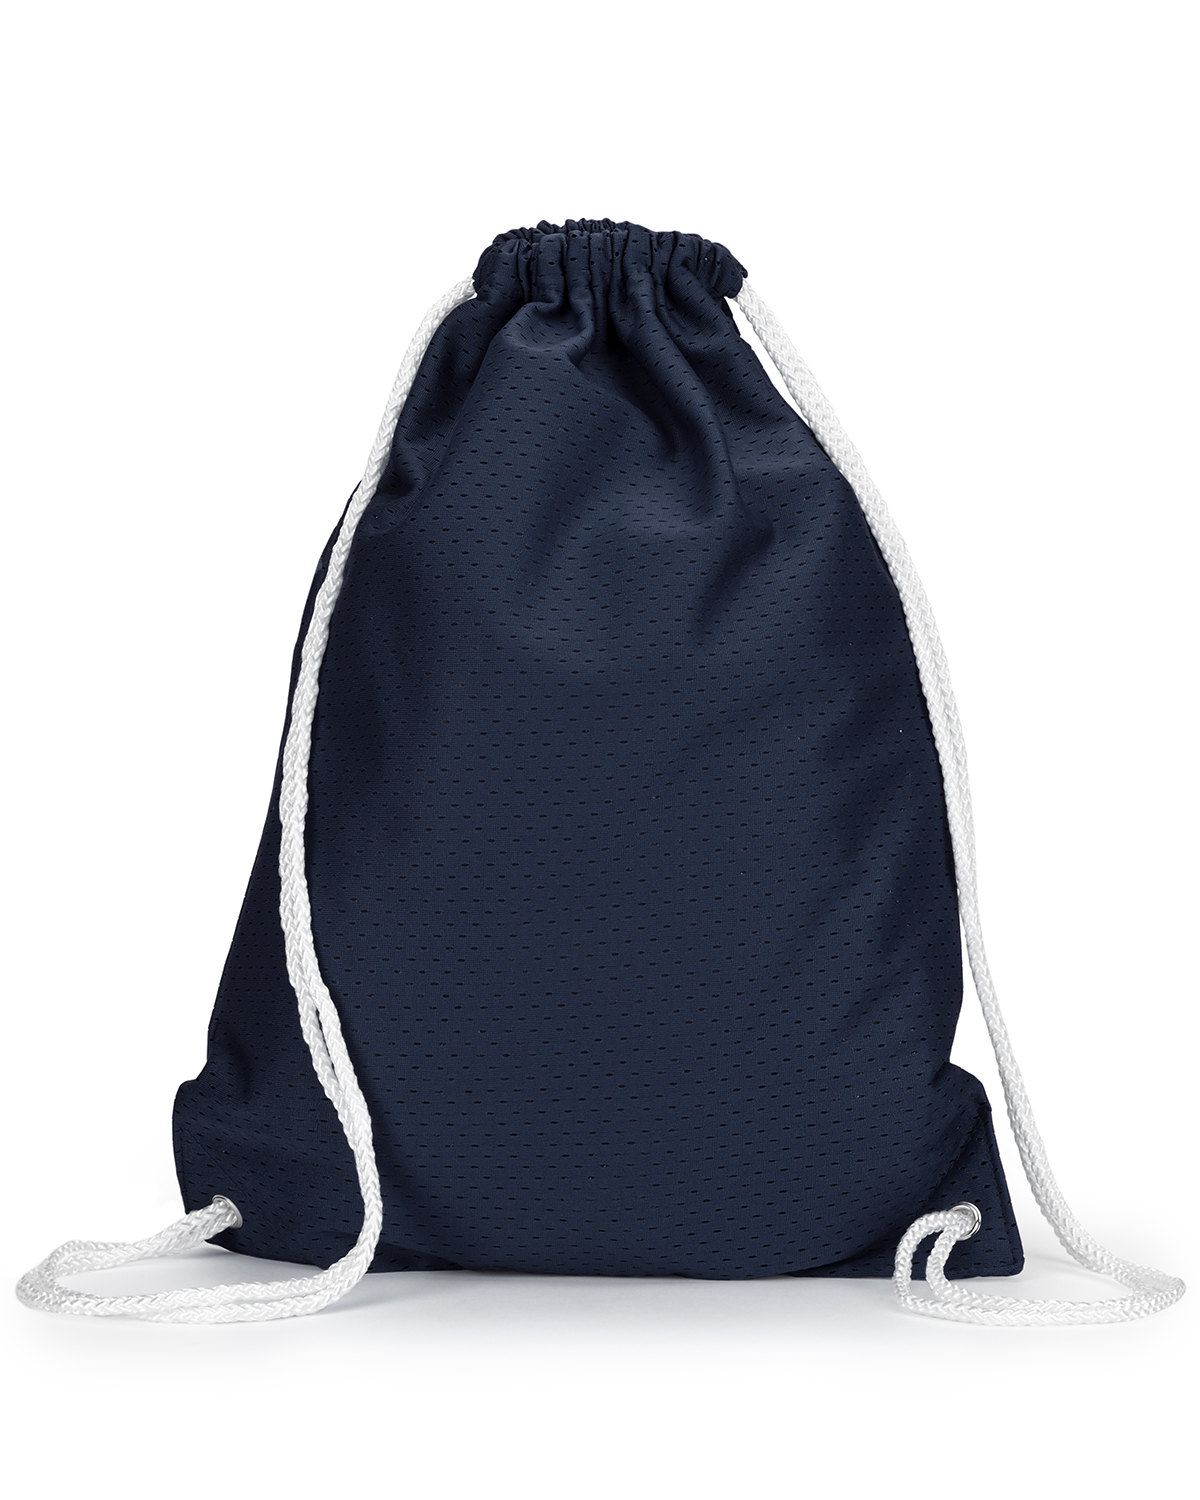 Jersey Mesh Drawstring Backpack